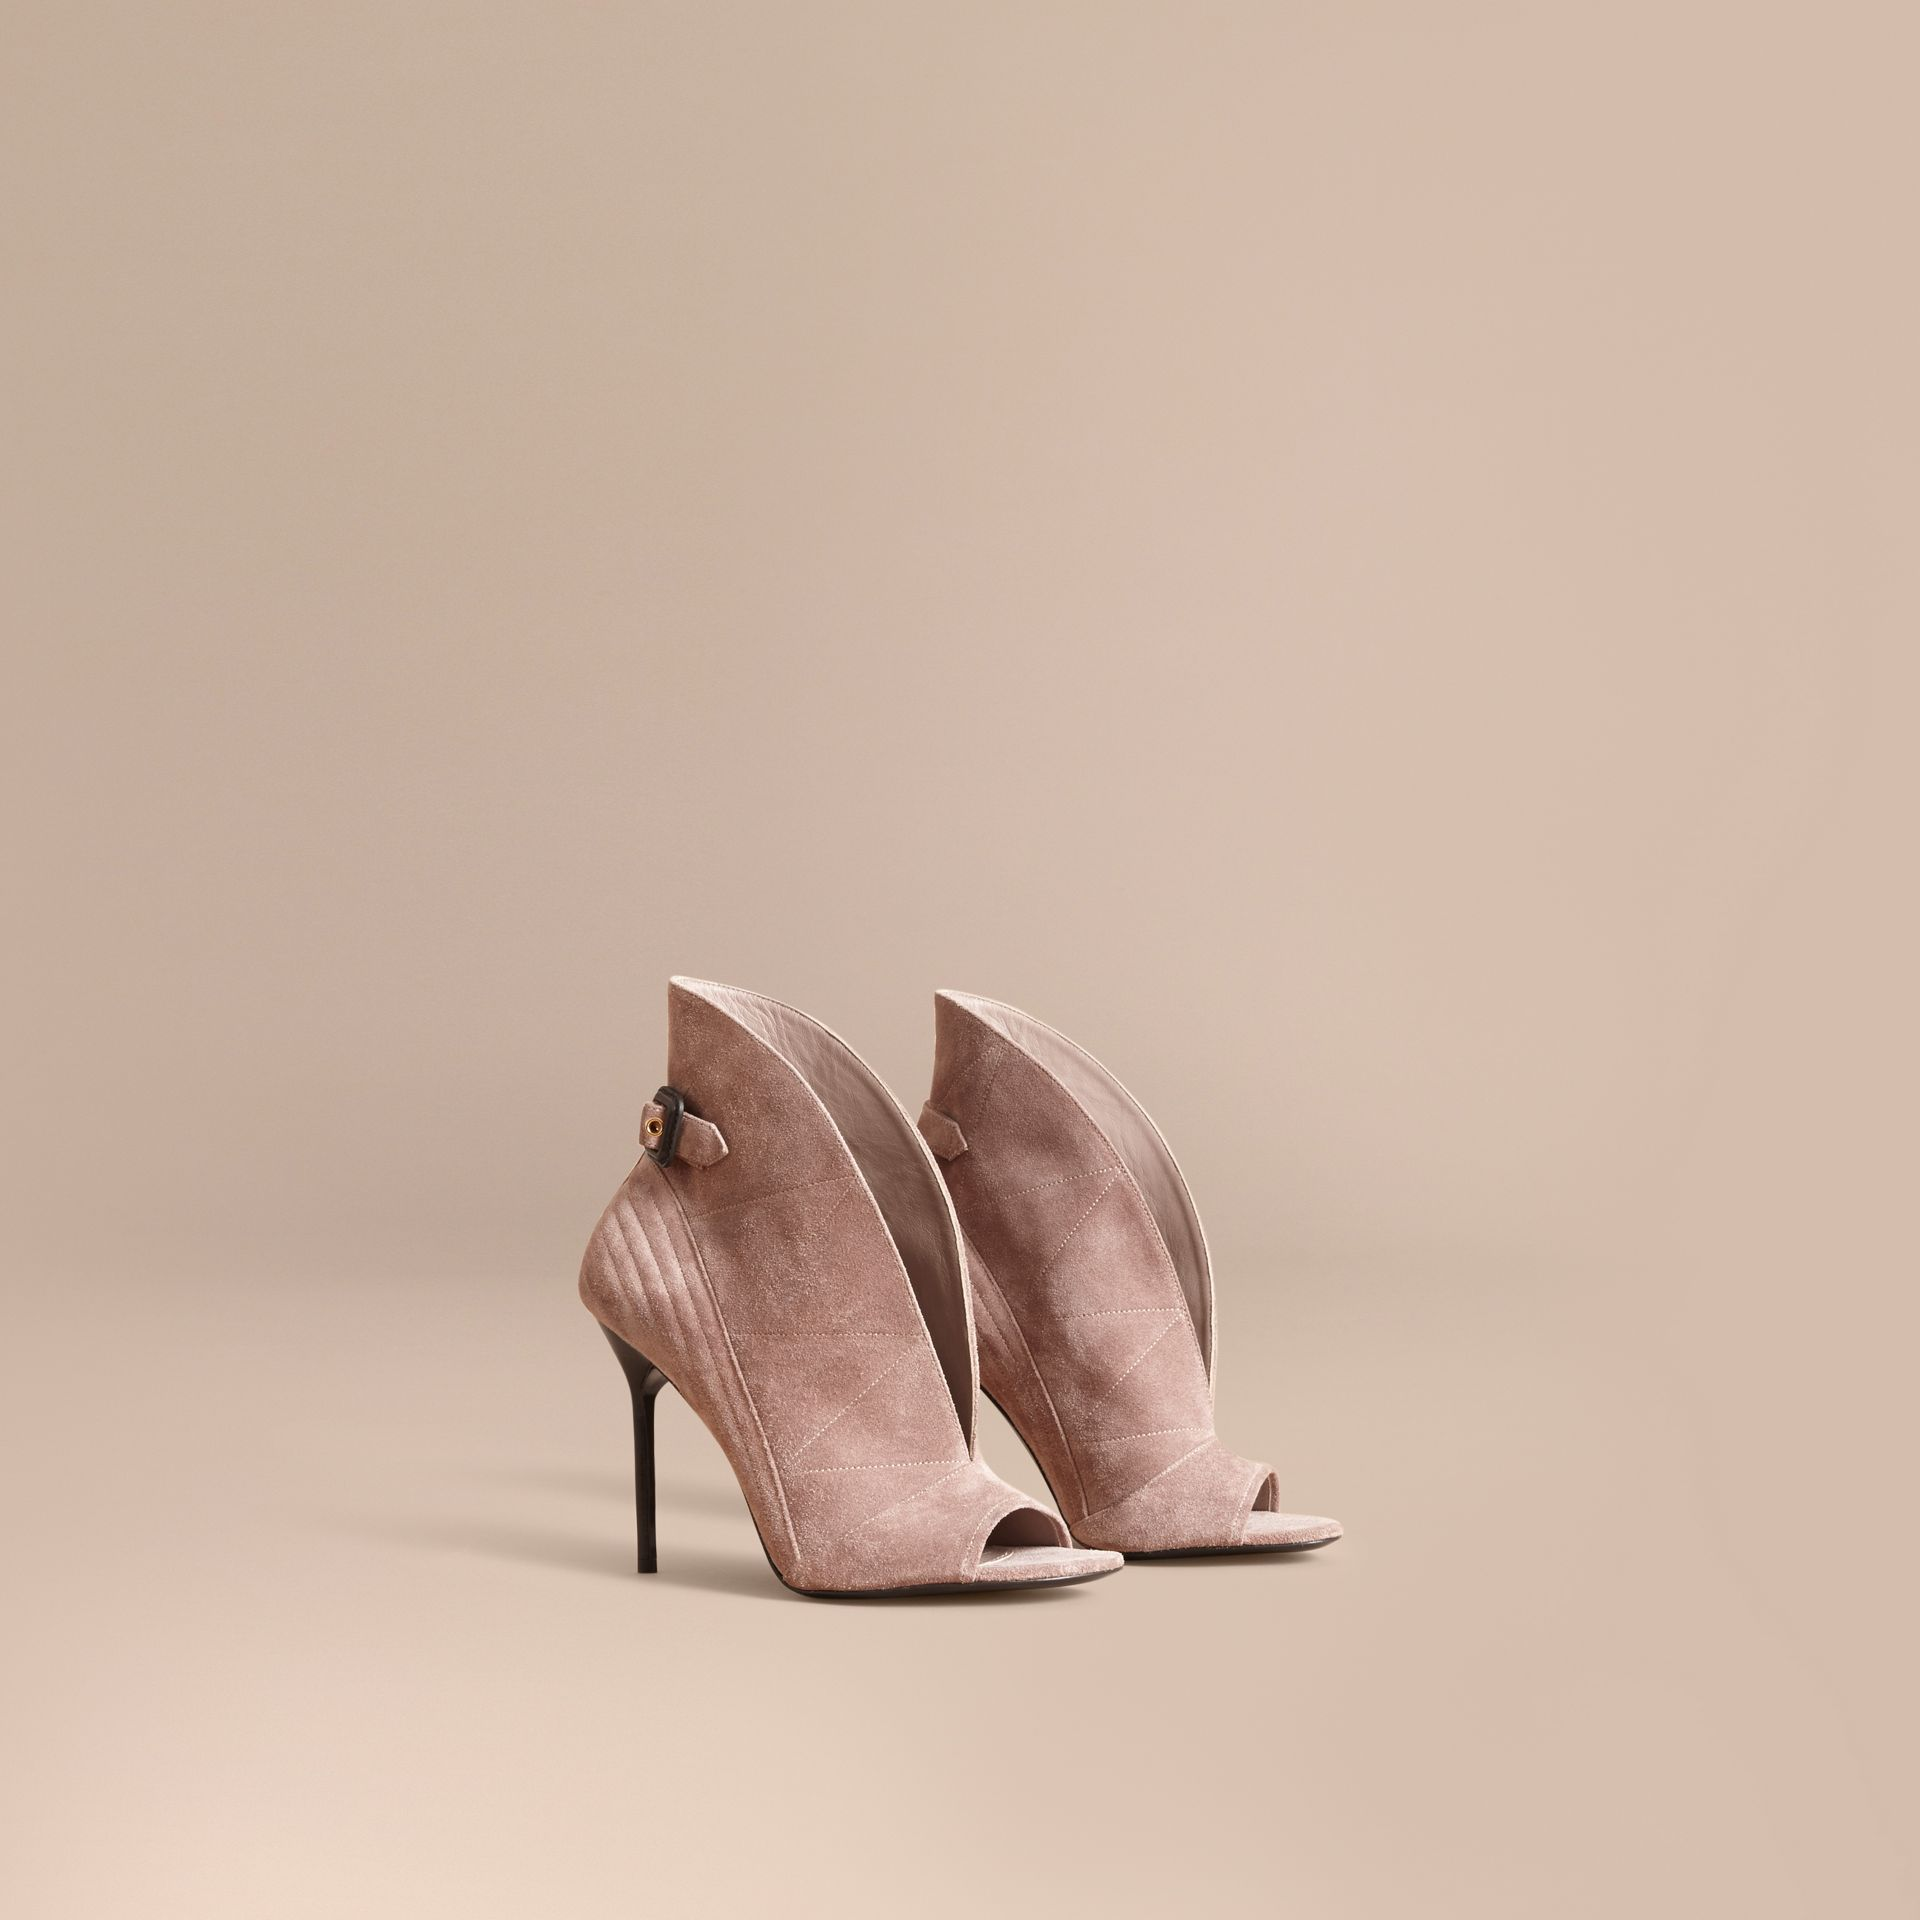 Buckle Detail Suede Peep-toe Ankle Boots in Ivory Pink - Women | Burberry - gallery image 1